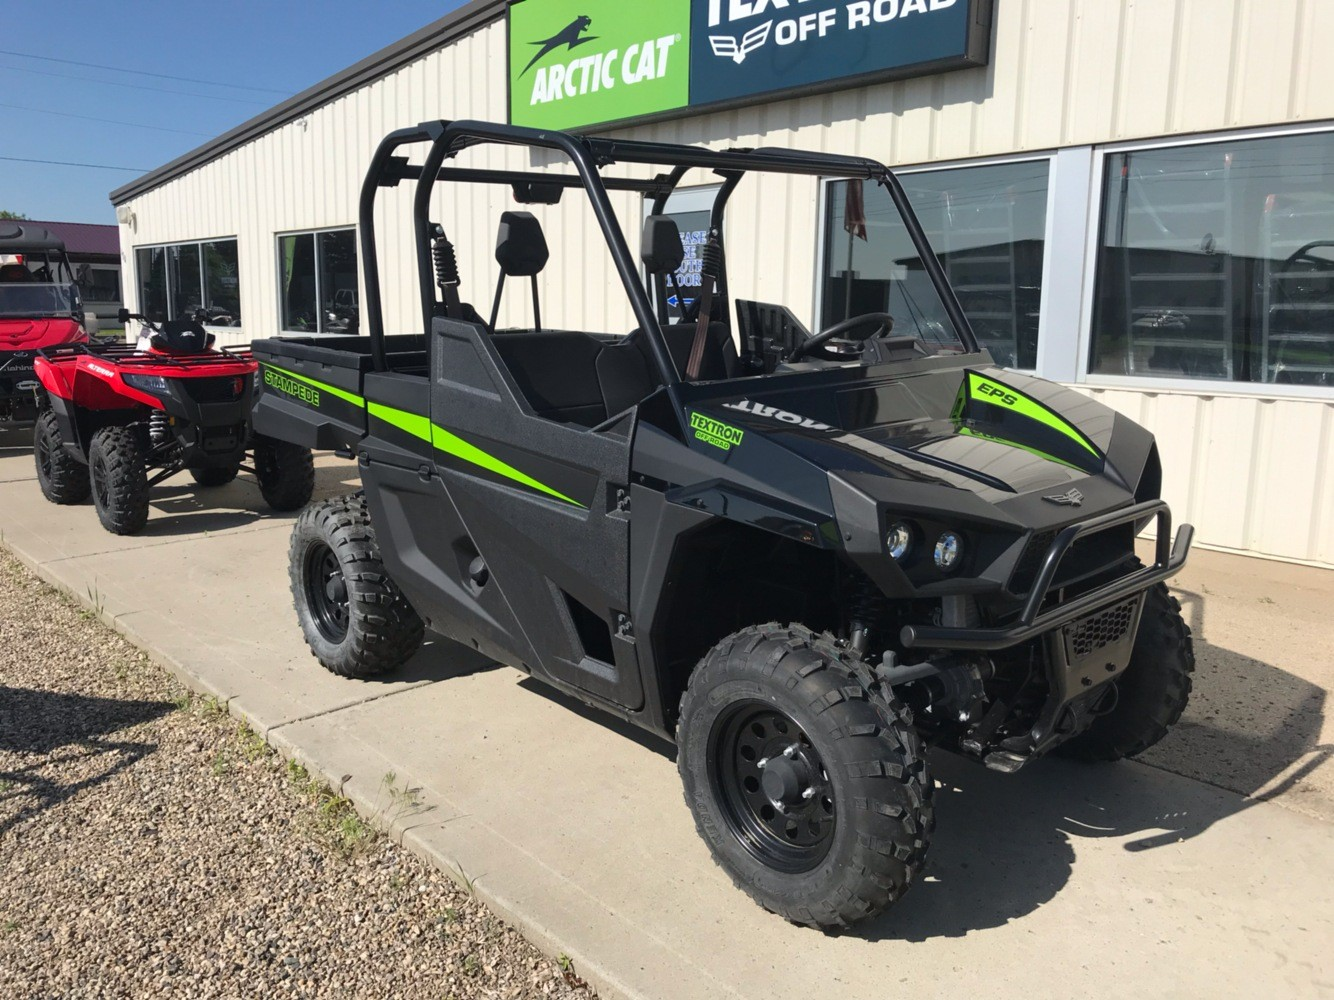 2018 Arctic Cat Stampede in Bismarck, North Dakota - Photo 1